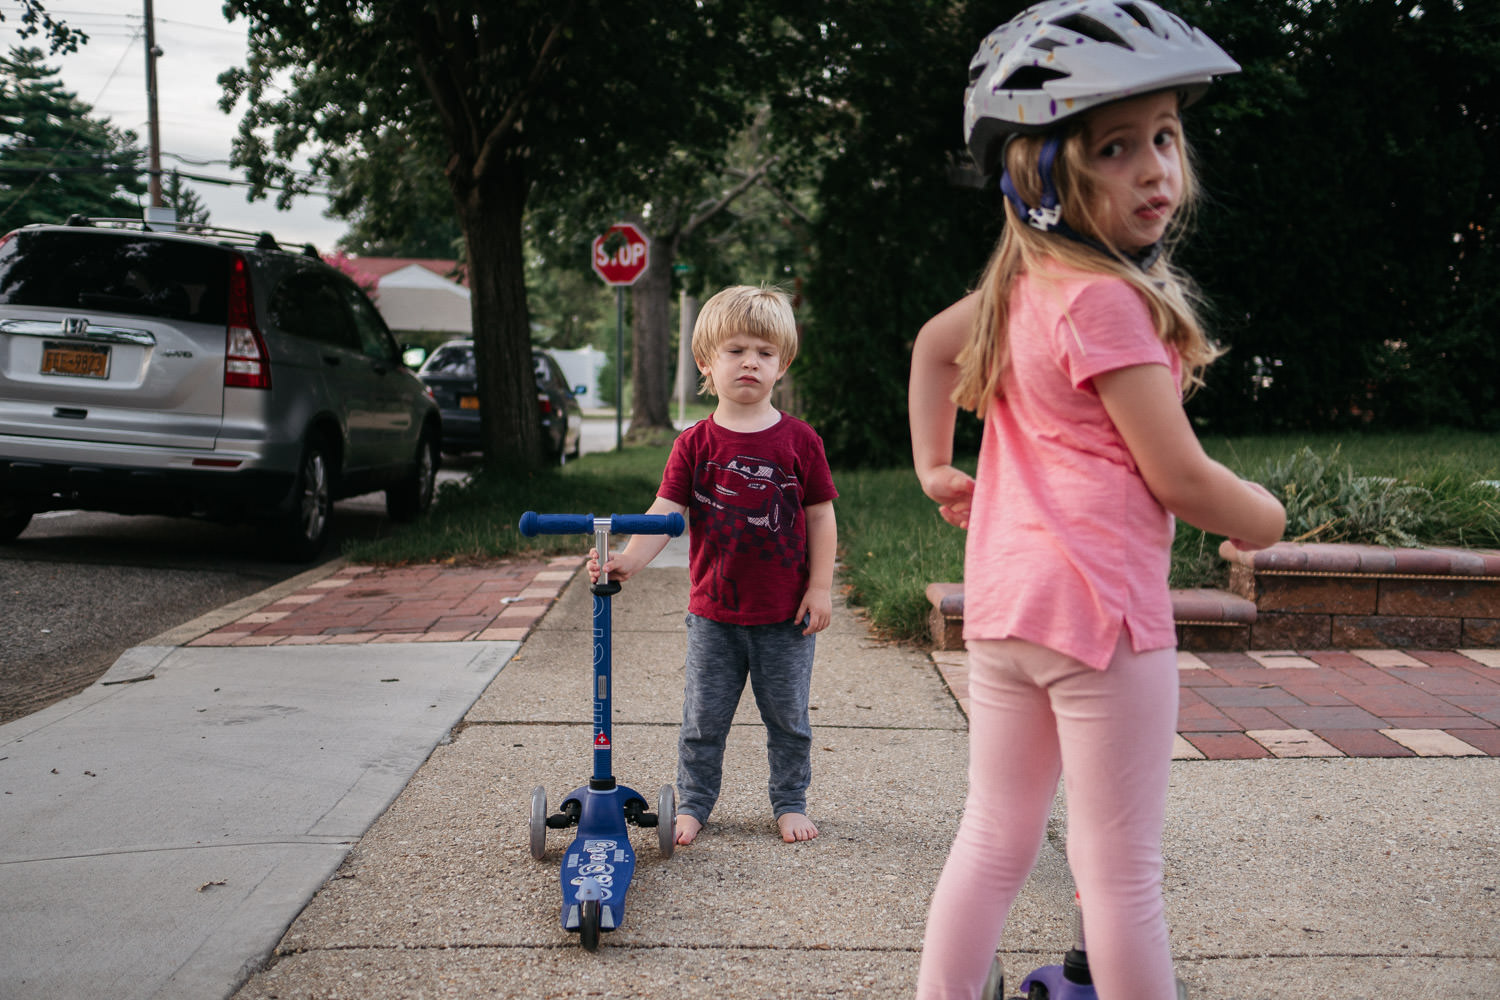 Two kids ride scooters in the driveway.